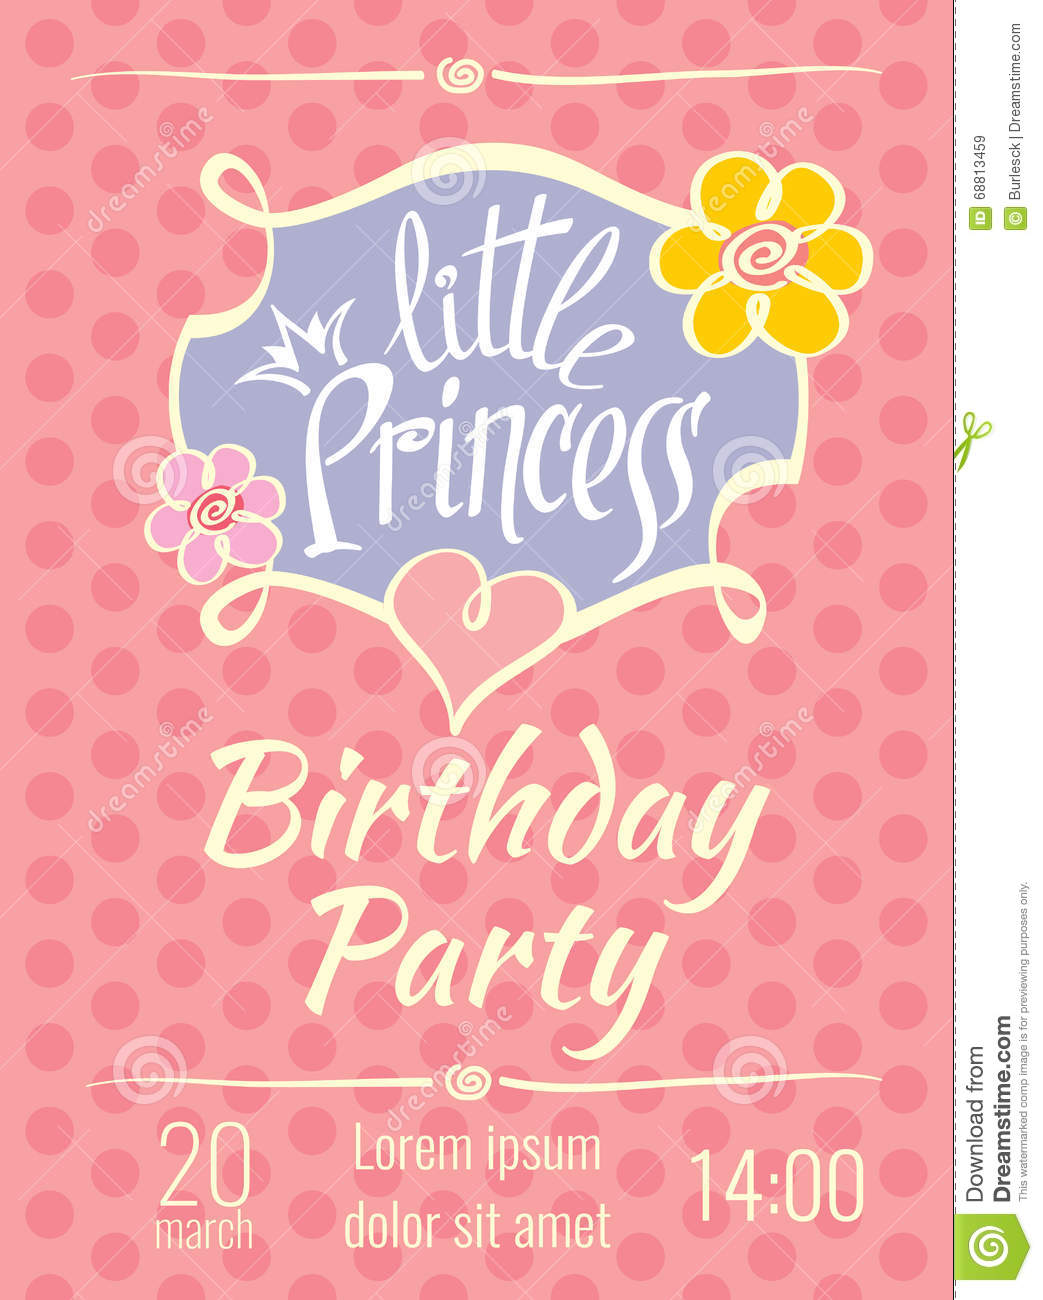 download birthday invitation card template ; little-princess-birthday-party-vector-poster-invitation-card-template-postcard-68813459